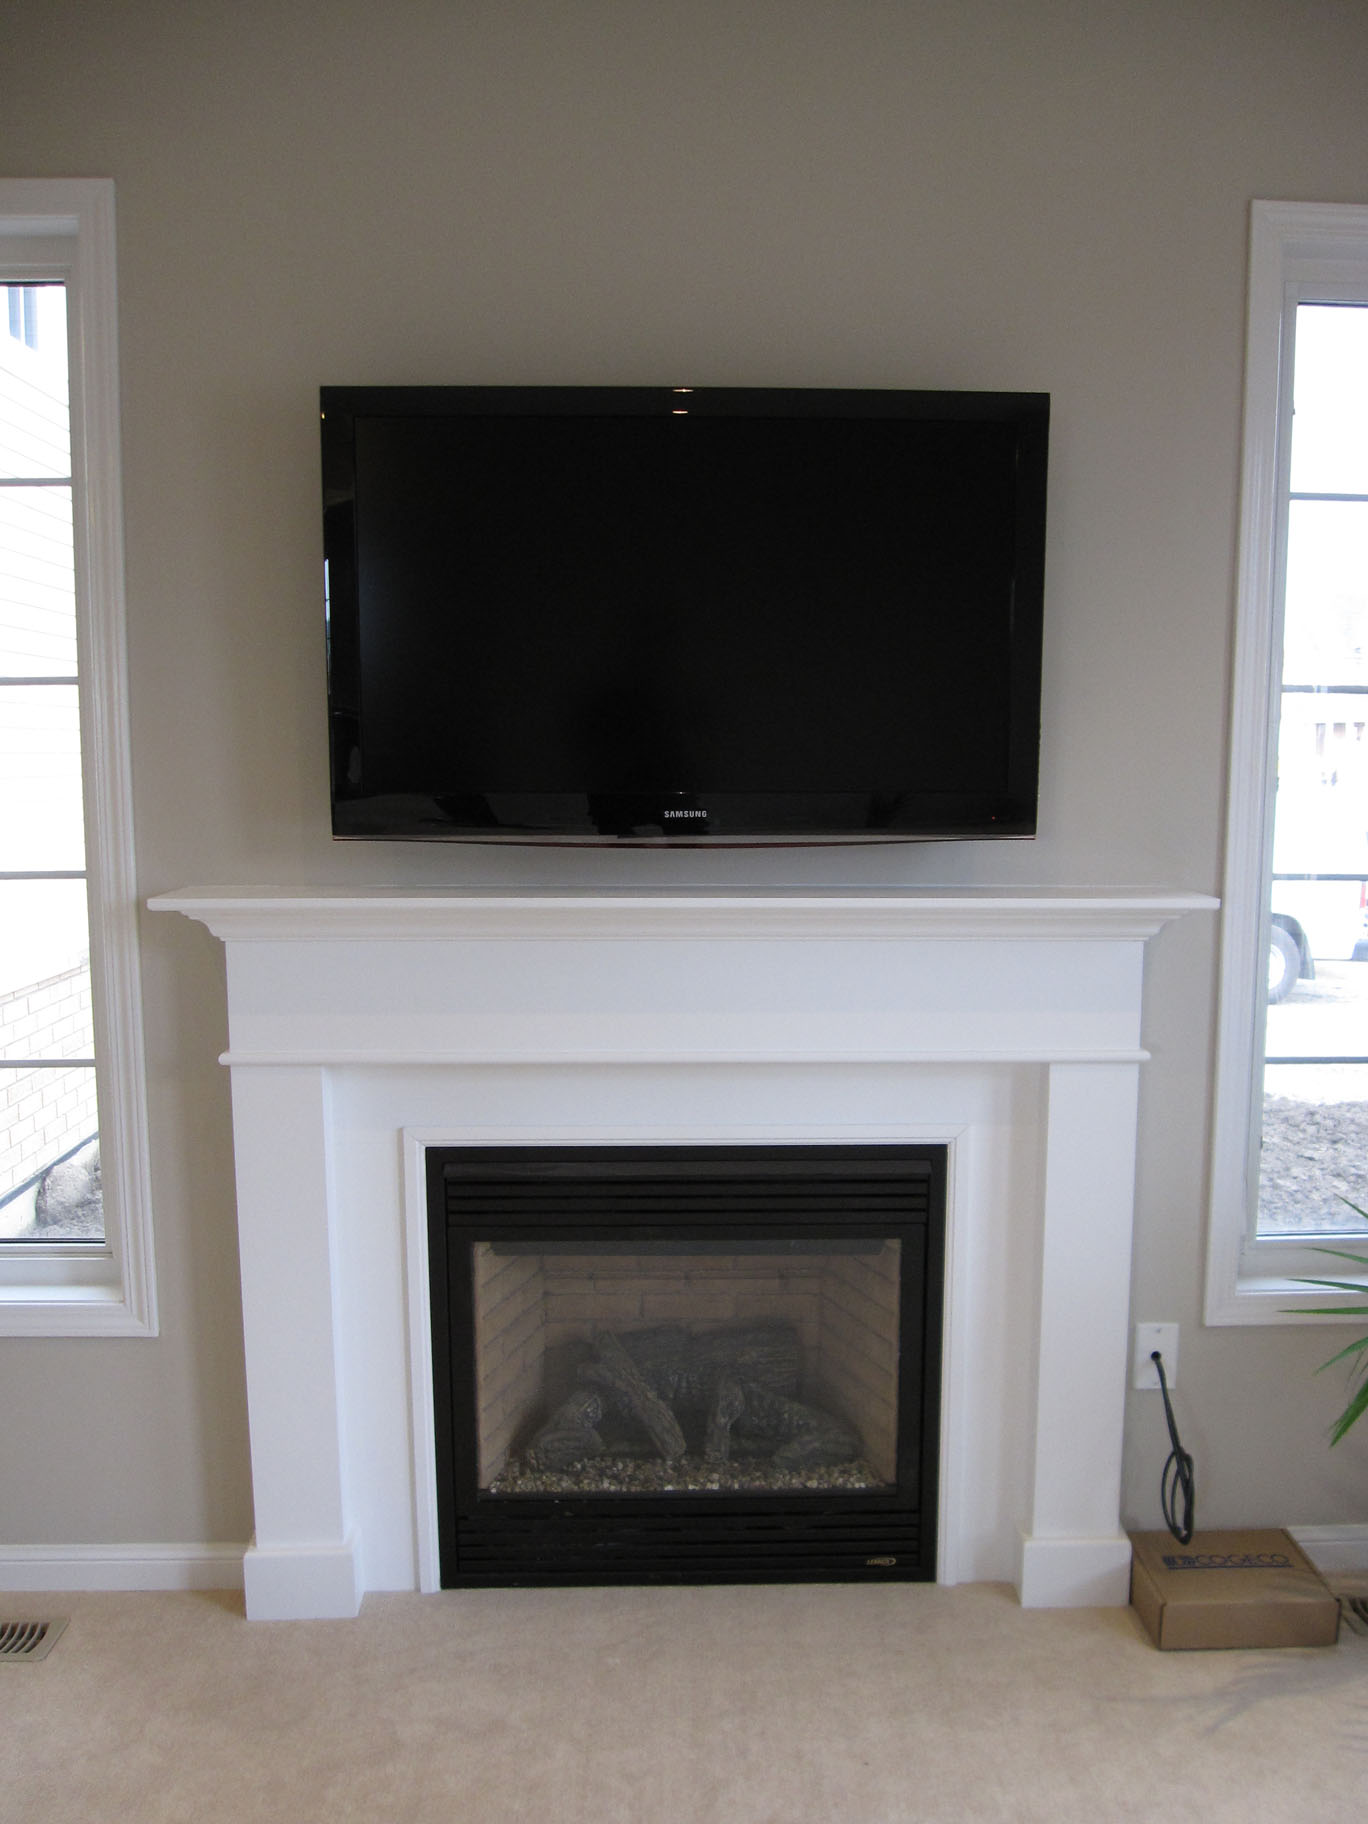 Fireplace Mantel Decor With Tv How To Get The Proper Fireplace Mantel Height For The Sake